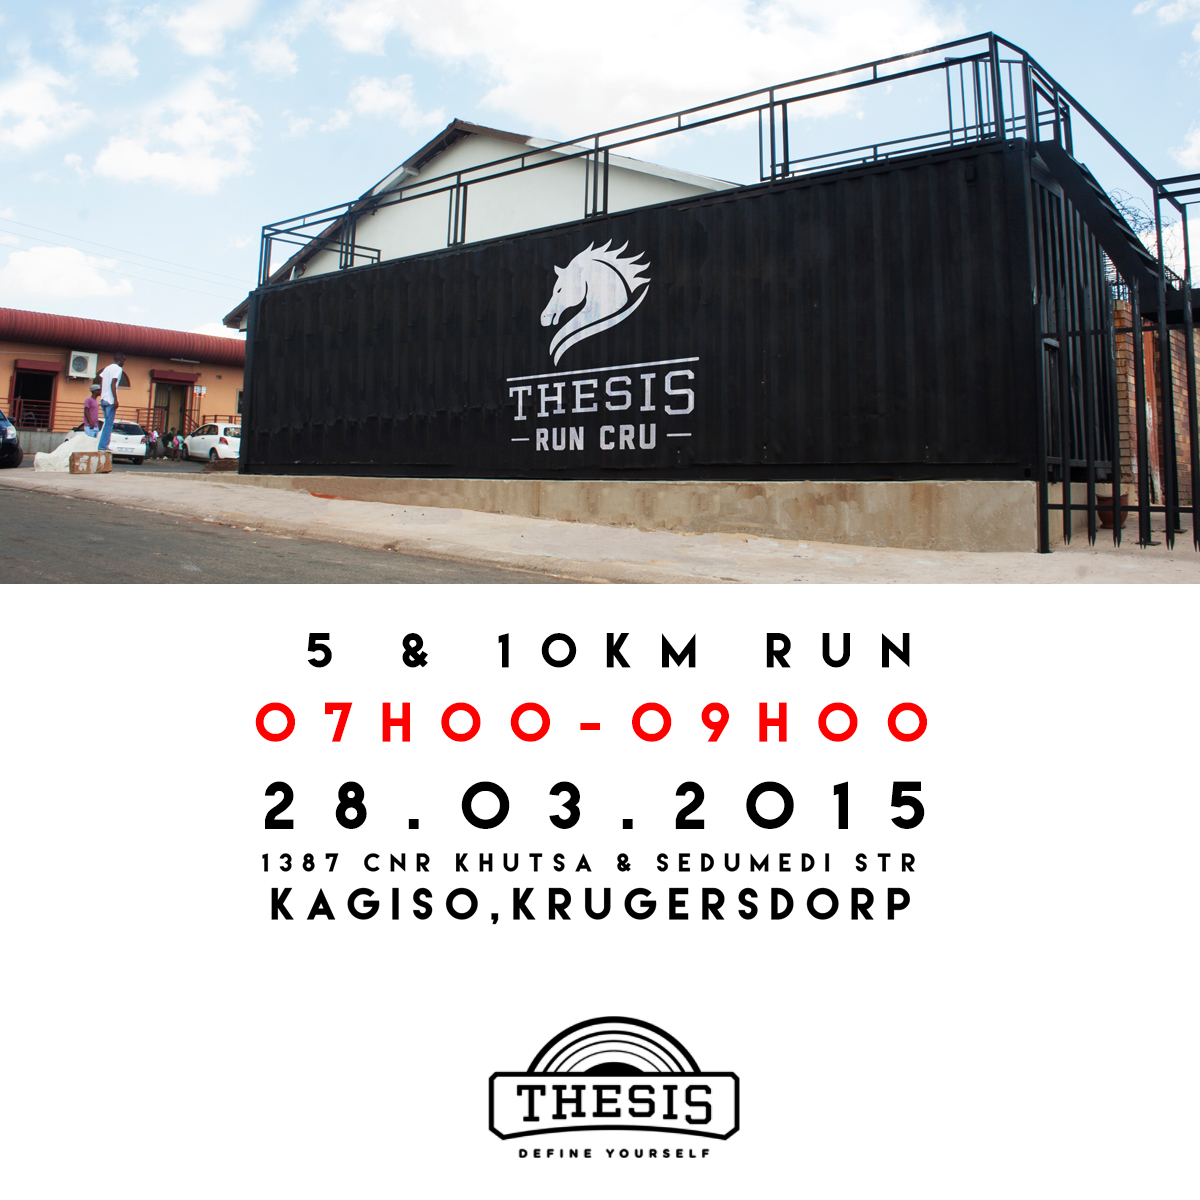 We kick start the day with our Thesis Run Cru. This is our social running club that wakes up every Saturday with the aim of getting as many people into running as possible. The quest is simple, if you can move you feet, then come join us. 5km & 10km routes. No one gets left behind.